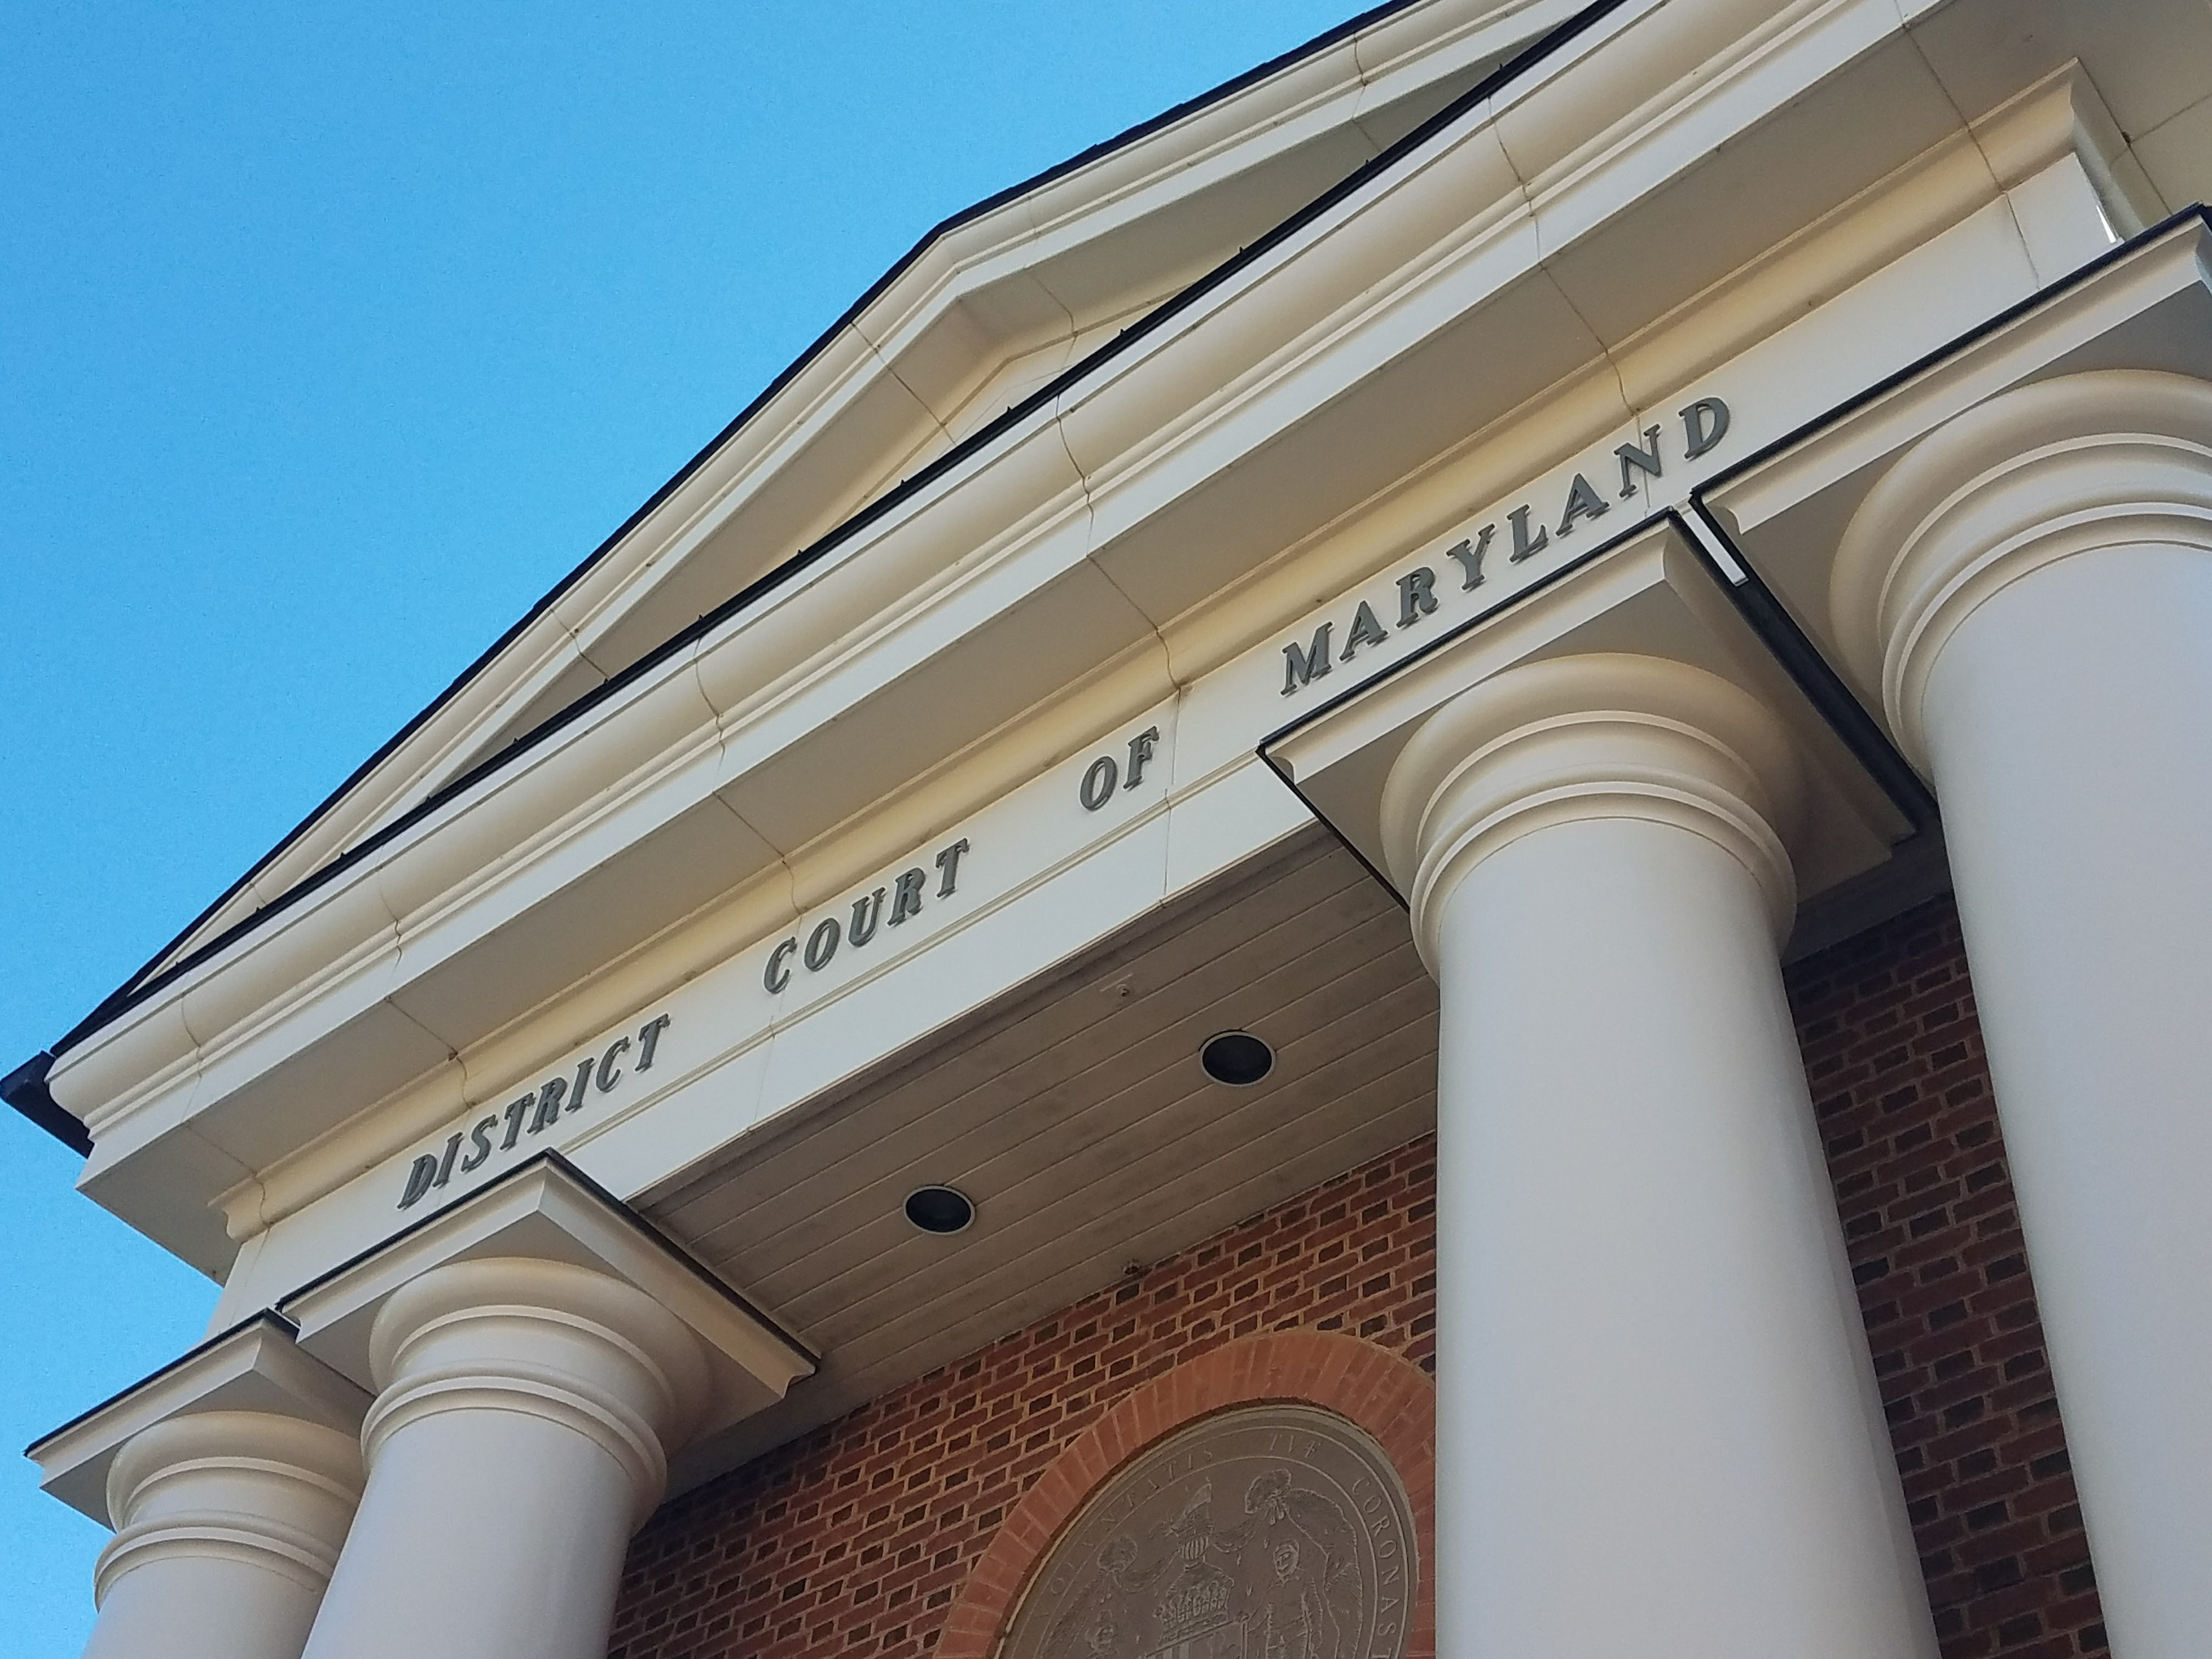 District Court of Maryland - Courts Closed in Maryland on March 6, 2013